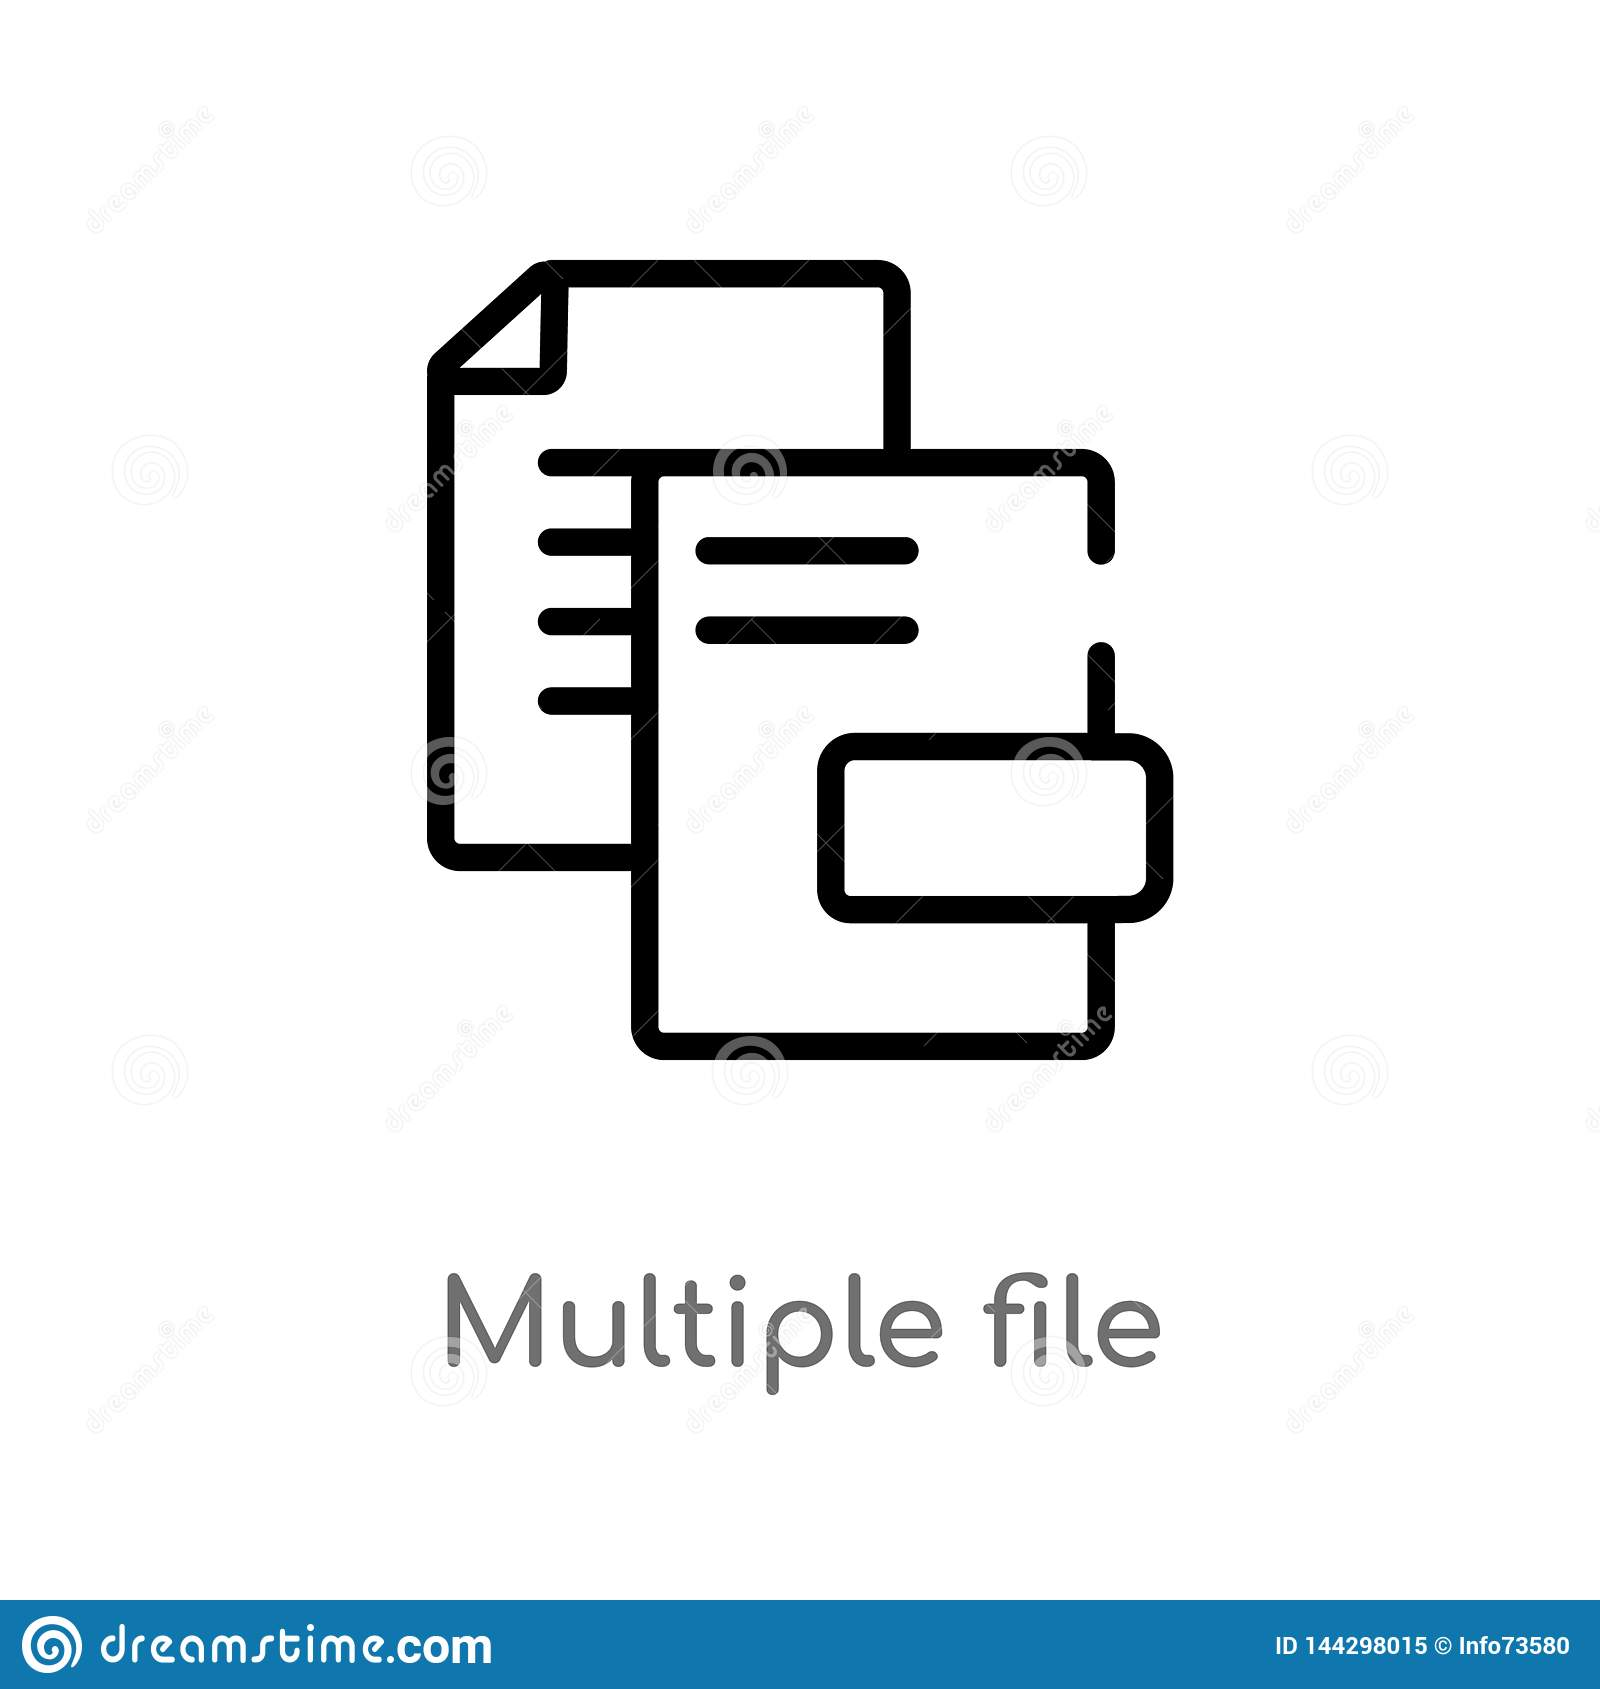 outline multiple file vector icon. isolated black simple line element illustration from user interface concept. editable vector